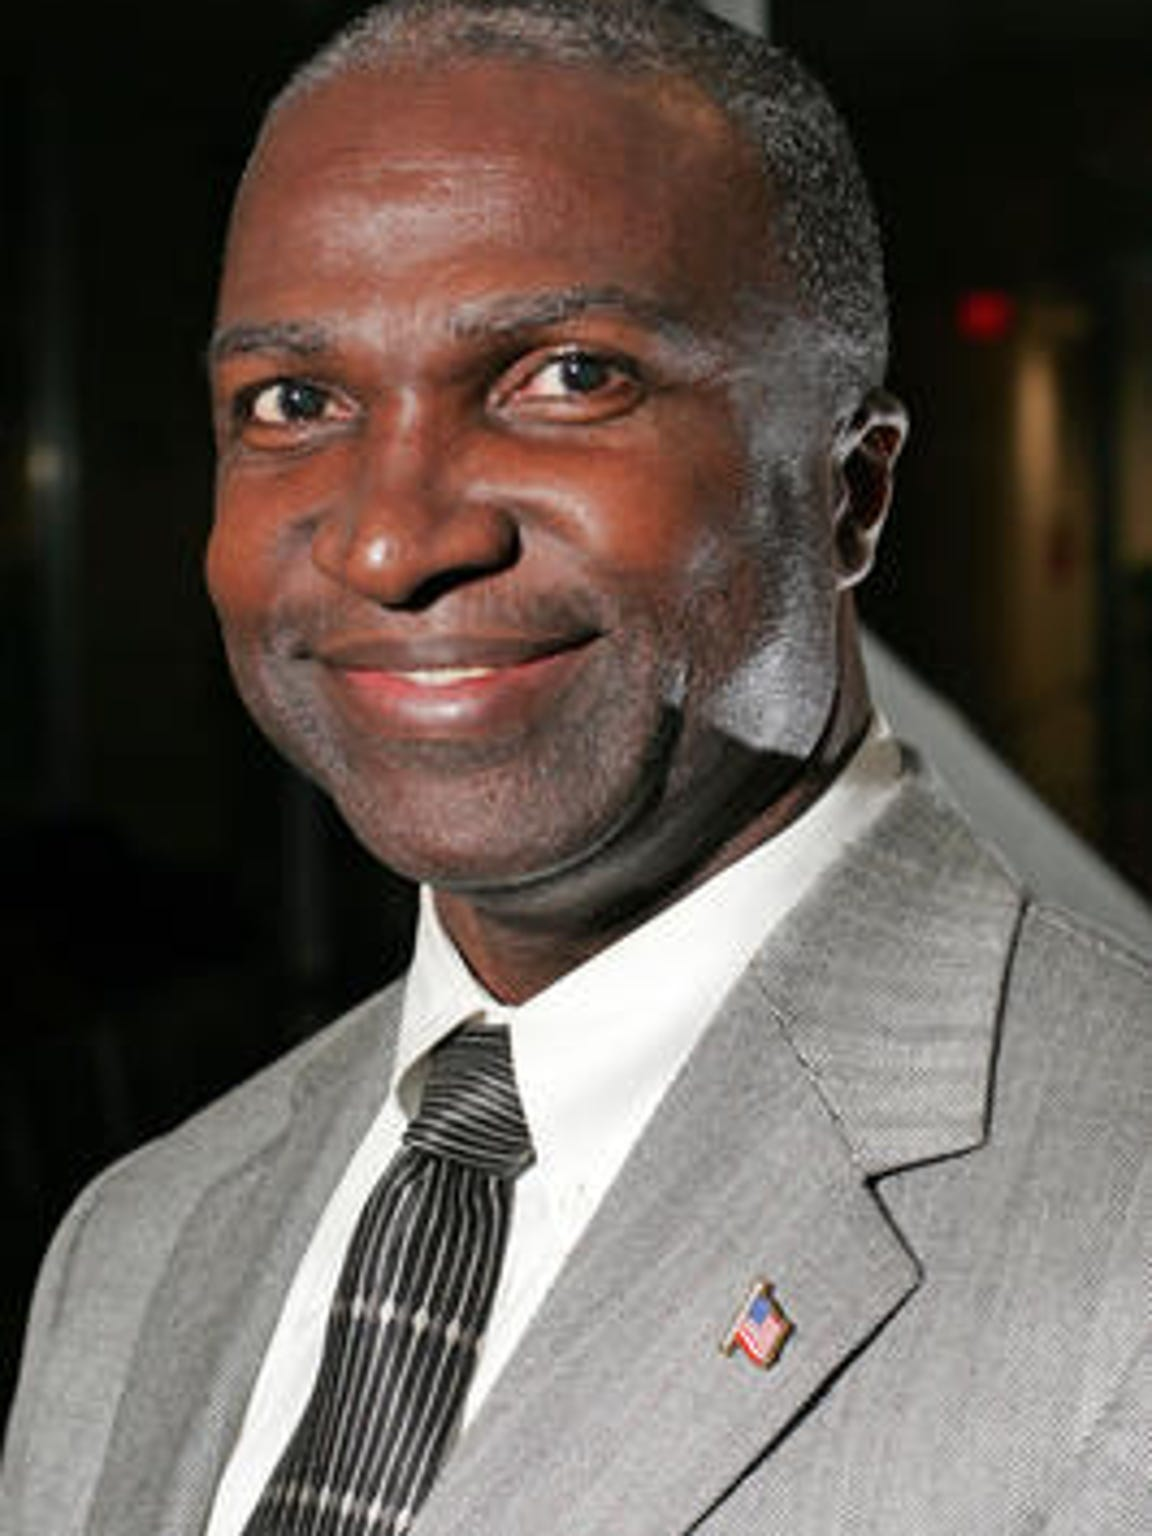 Plainfield Mayor Adrian Mapp